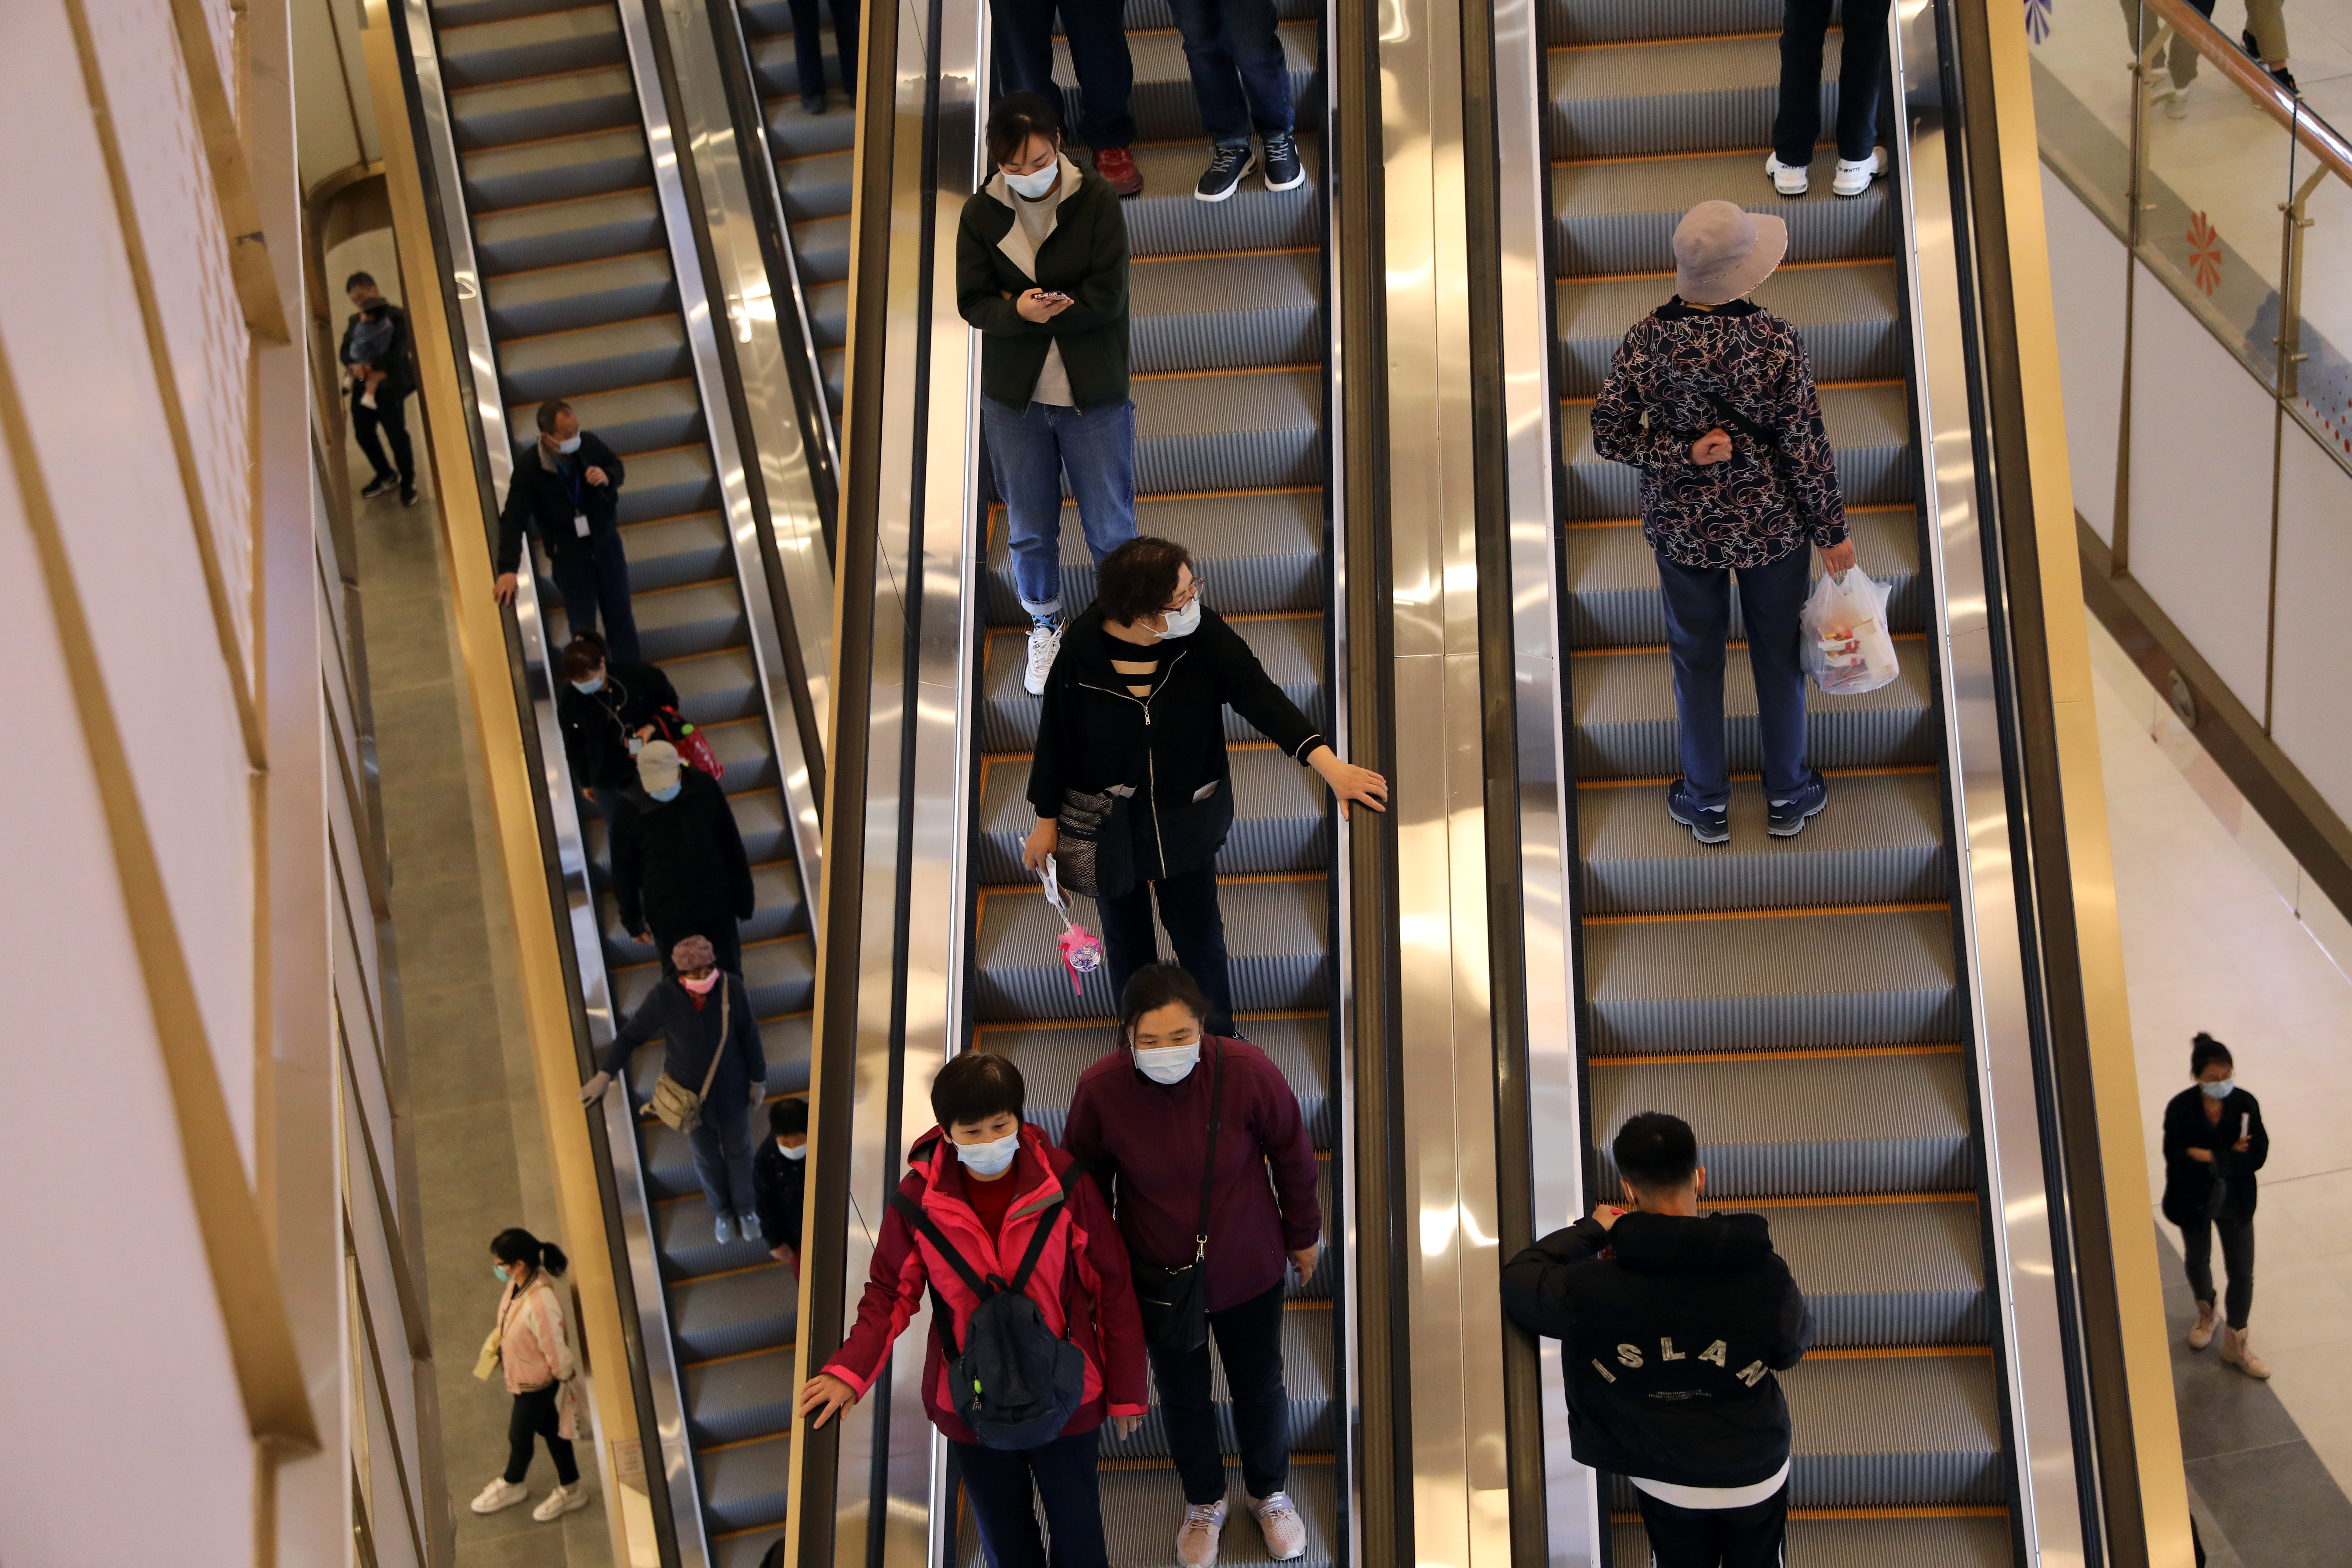 People ride elevators at a newly opened shopping mall in Beijing, China April 16, 2021. REUTERS/Tingshu Wang